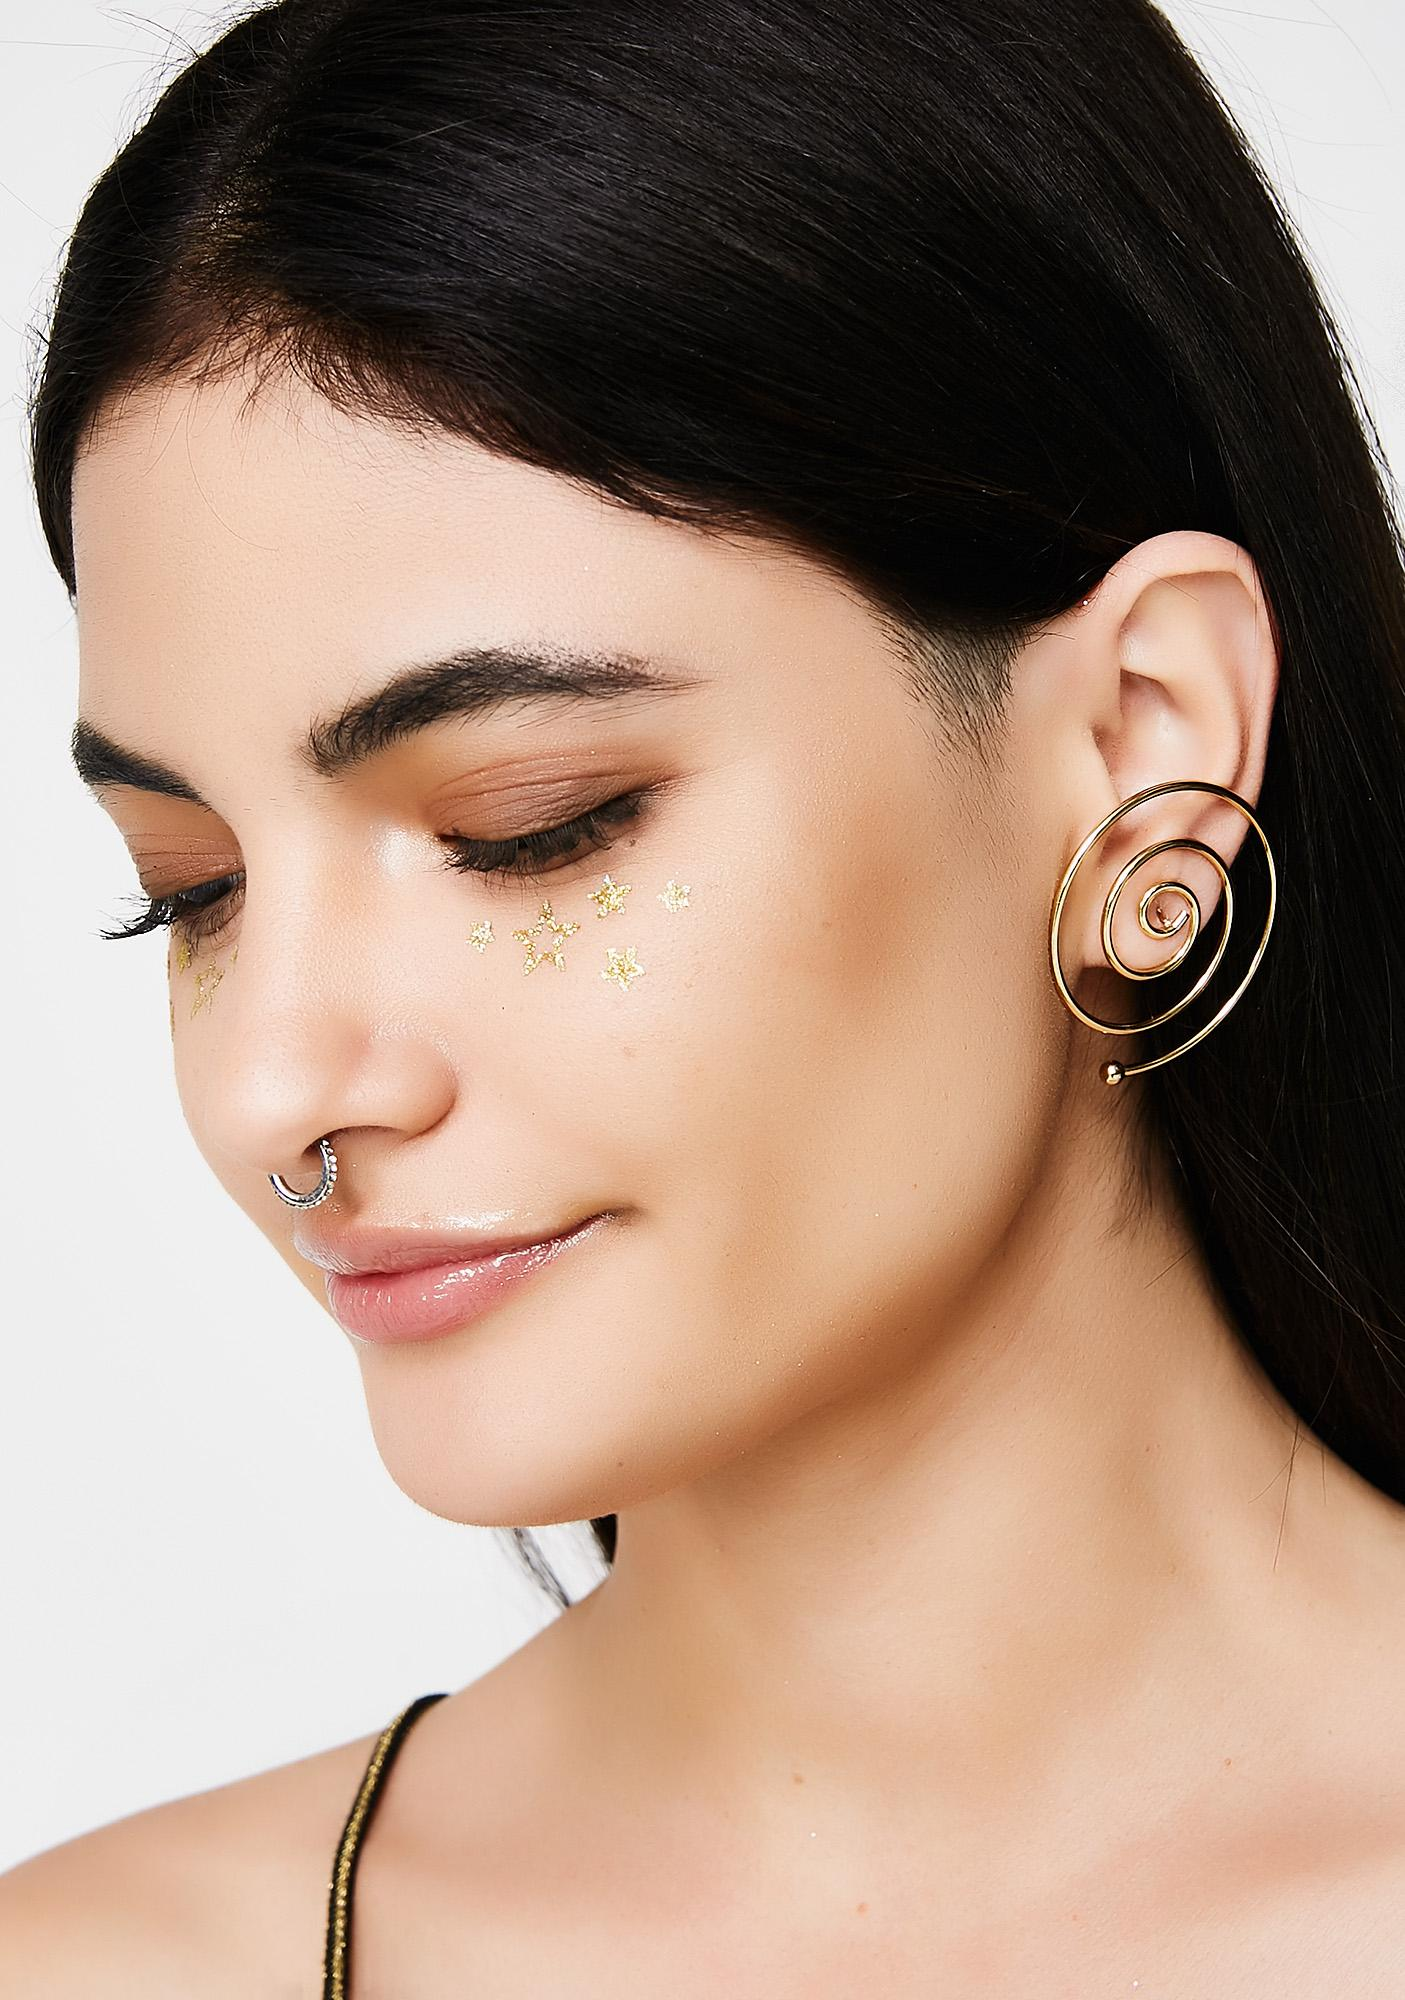 Spin Spin Sugar Earrings